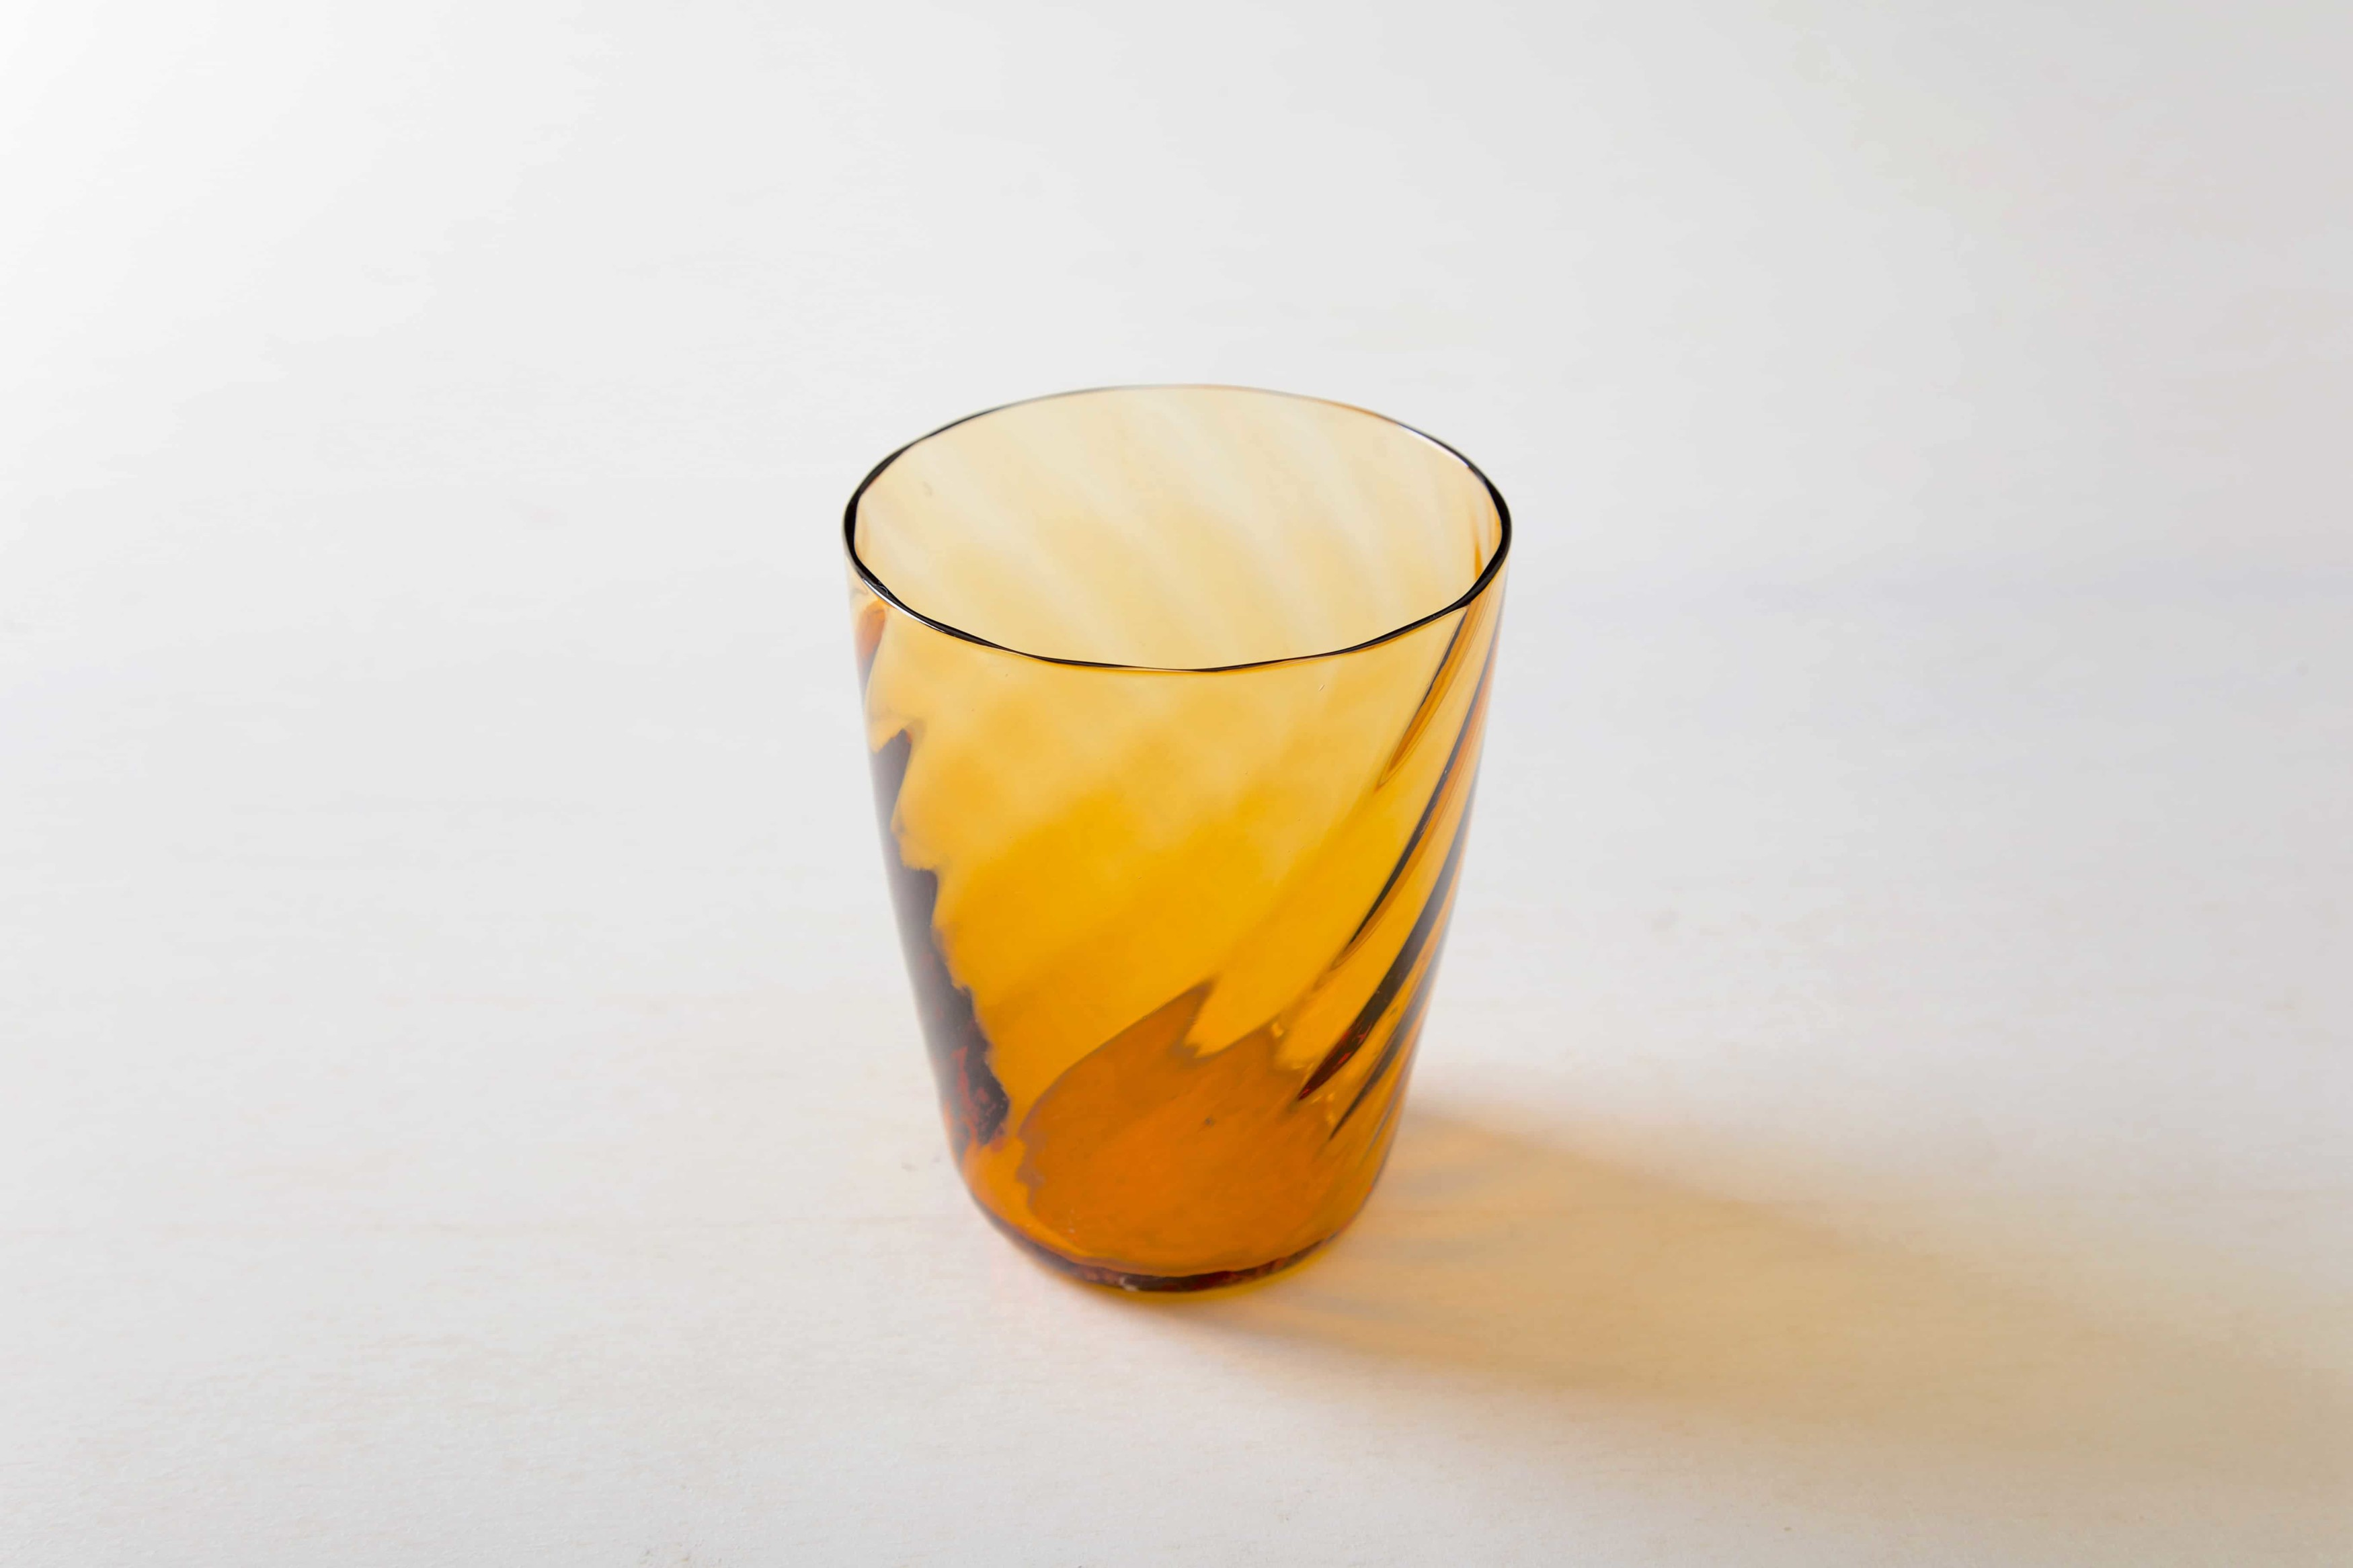 Rent glass variations for garden parties and summer events